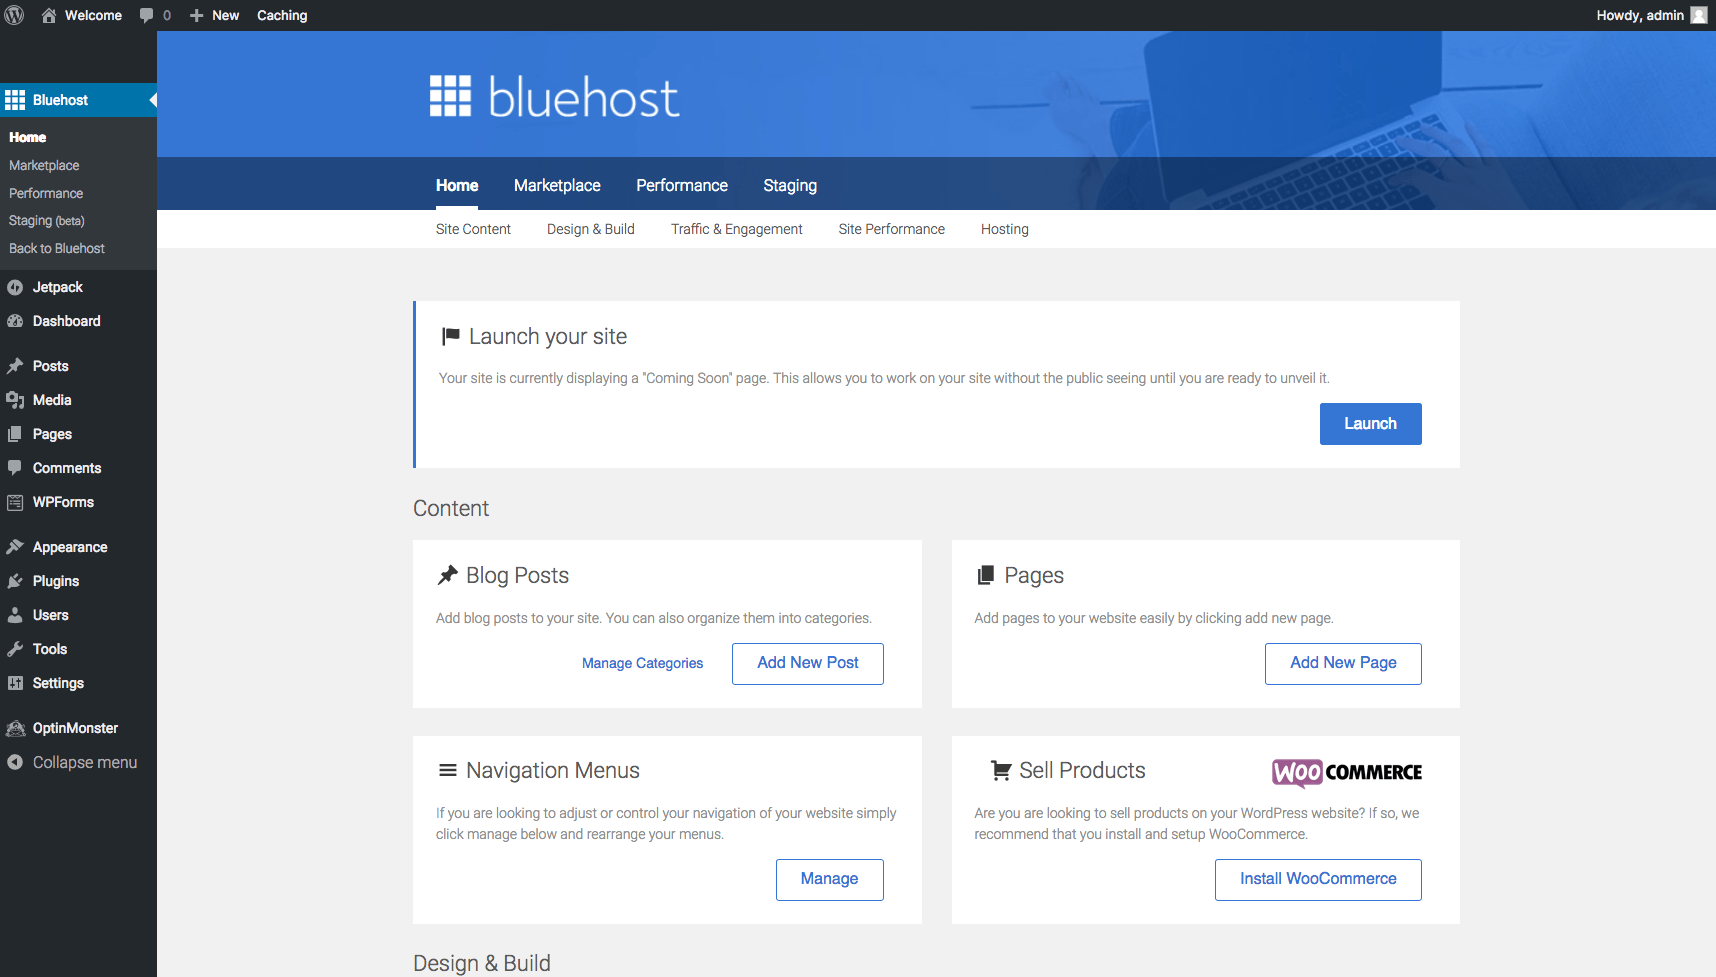 bluehost-wordpress-launch-site